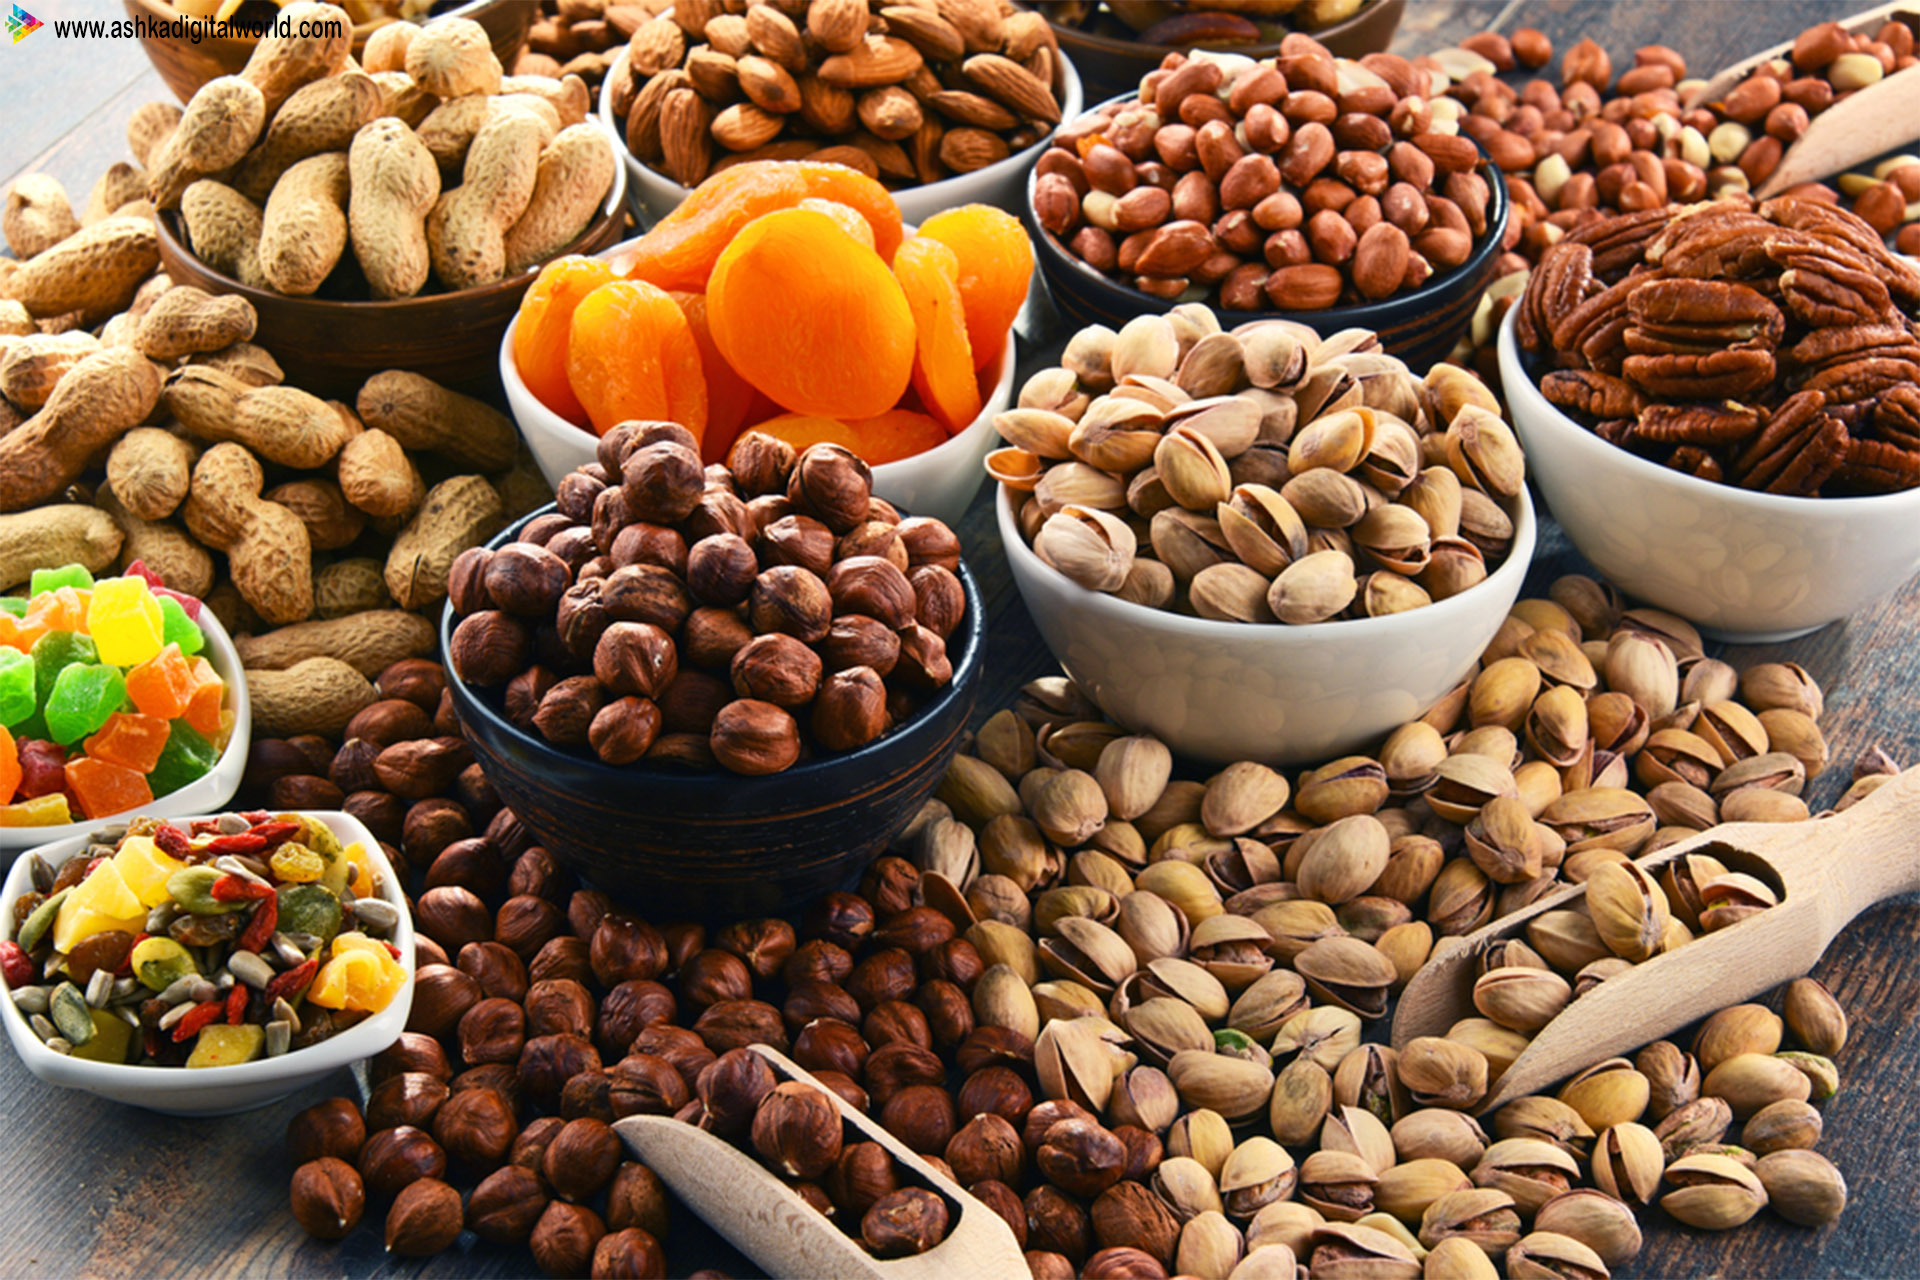 Dry Fruits Market May See Big Move | Sun-Maid, Olam International, Sunbeam Foods